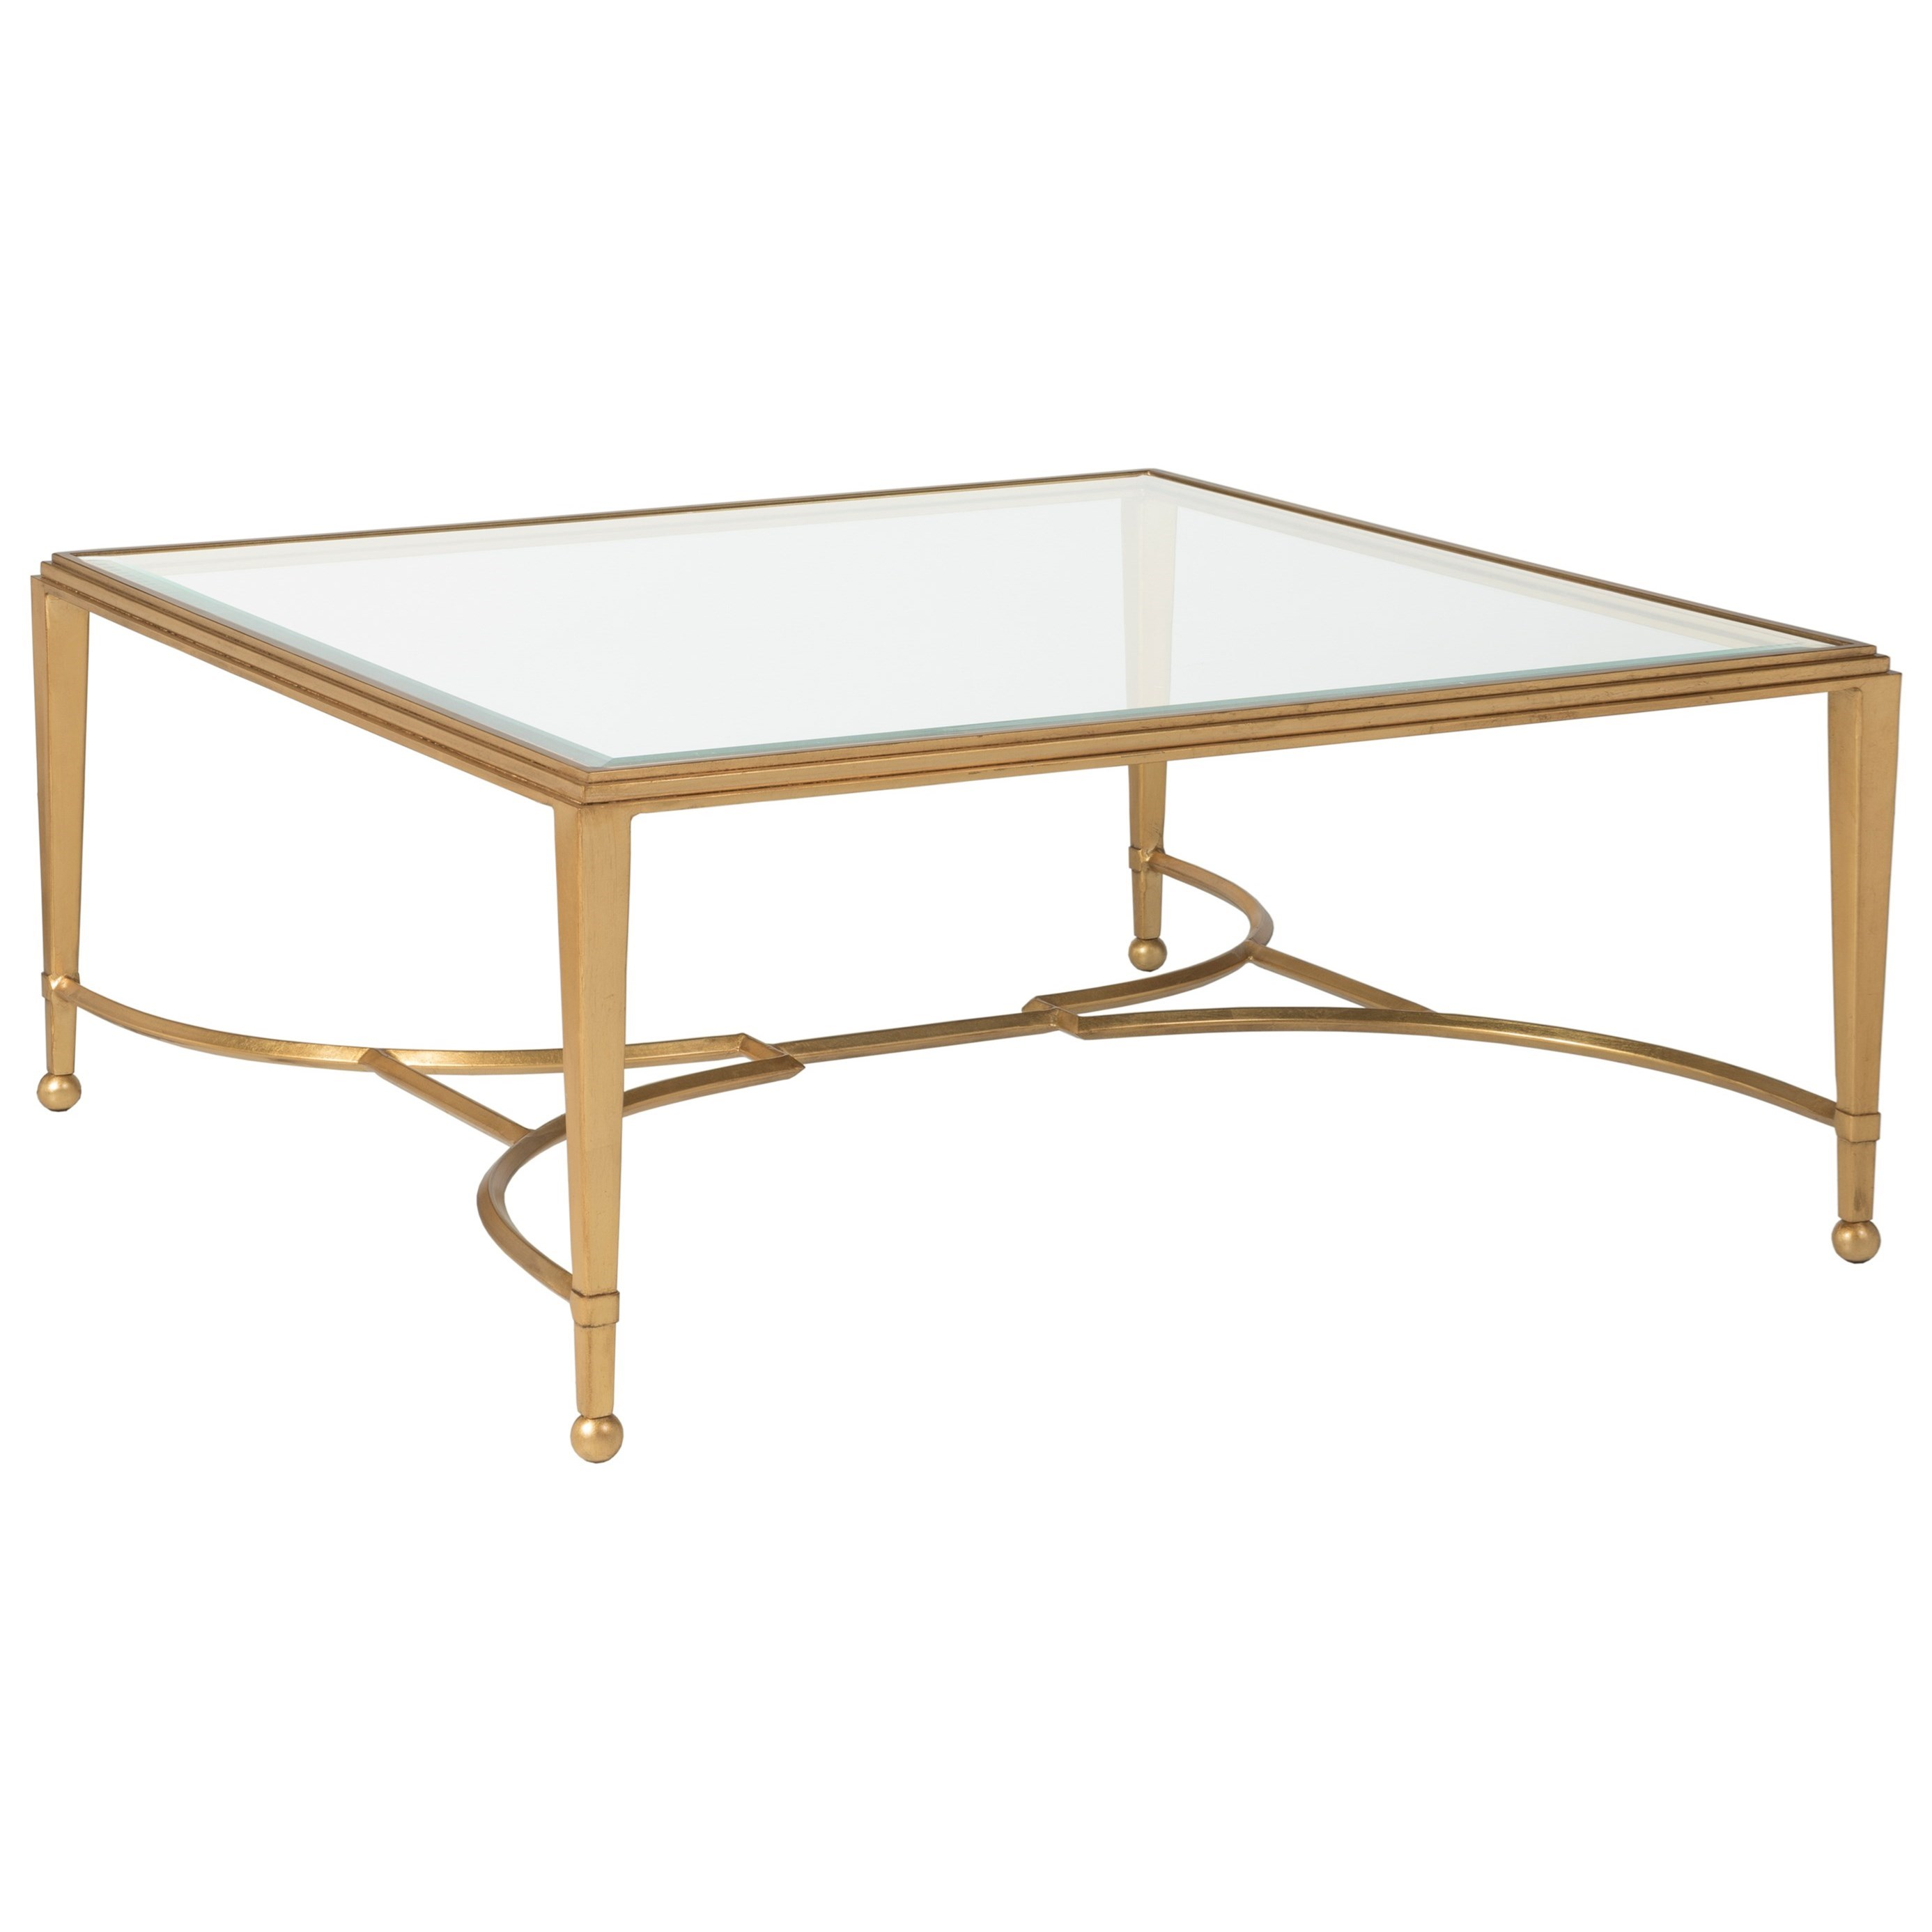 Metal Designs Sangiovese Square Cocktail Table by Artistica at Alison Craig Home Furnishings